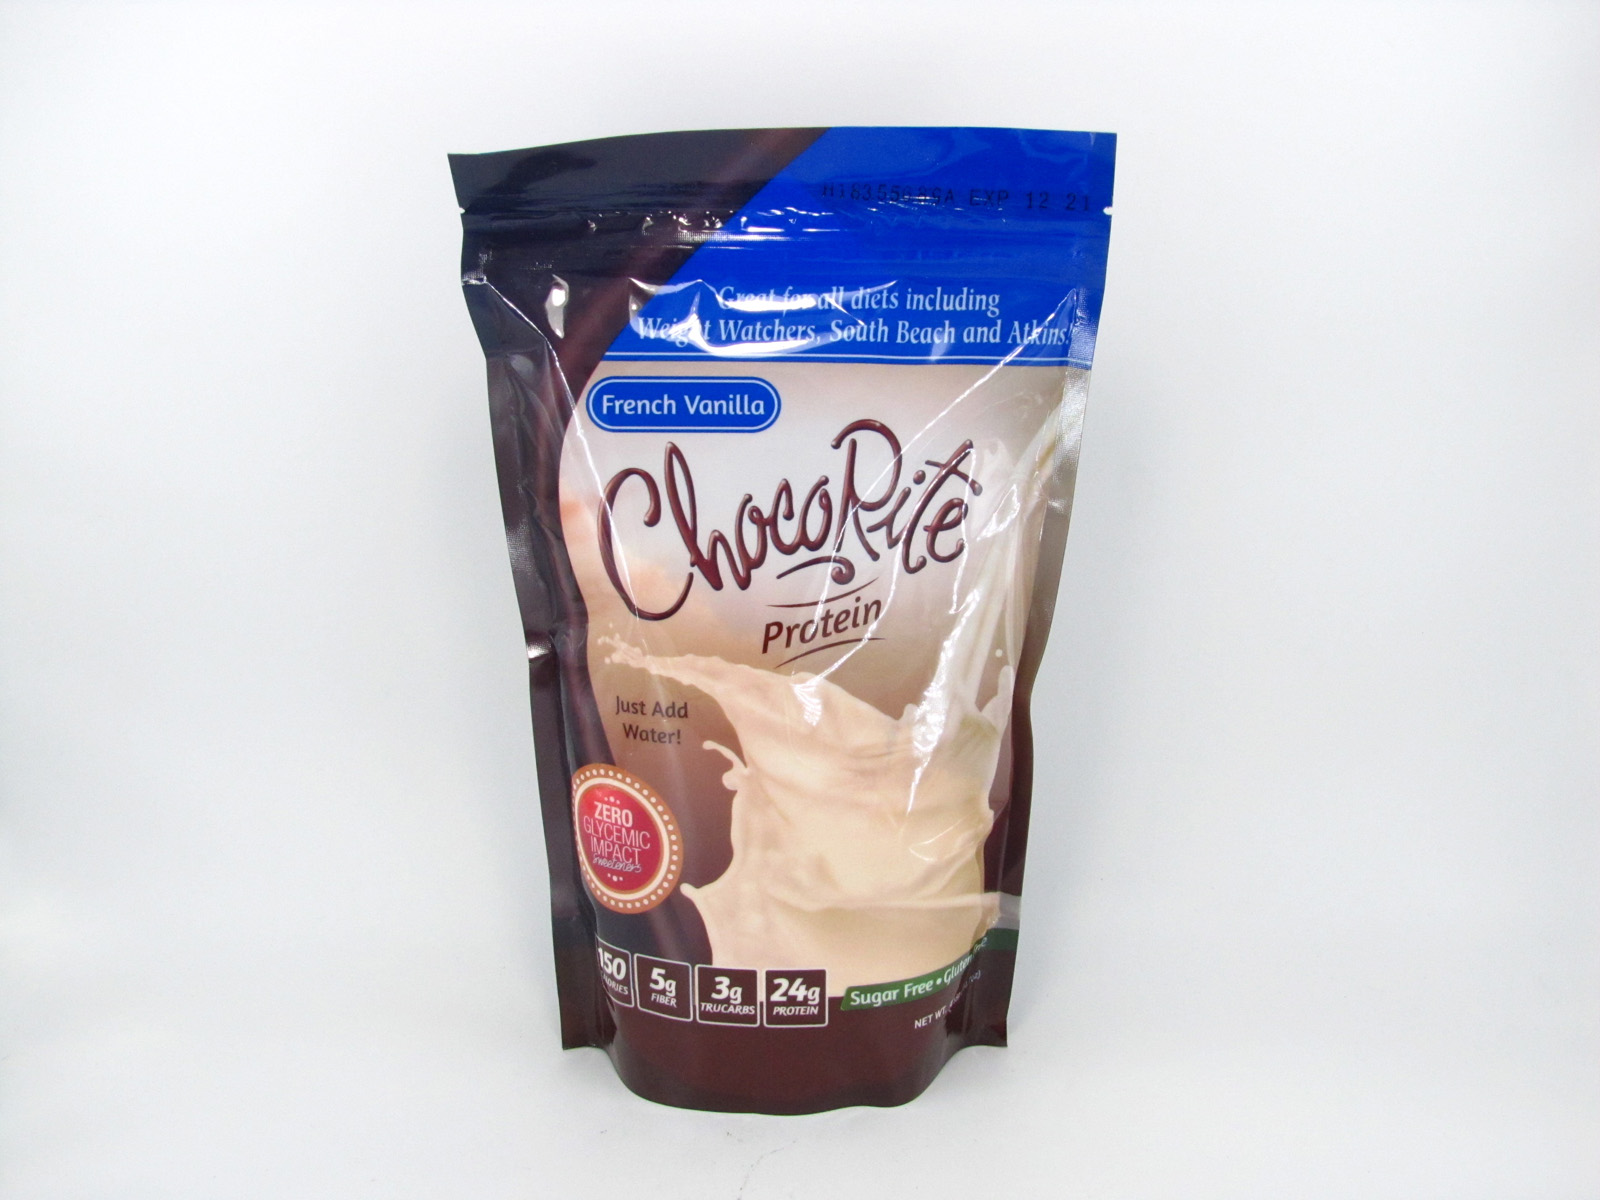 Chocorite Protein Shake (1lb)- French Vanilla - front view